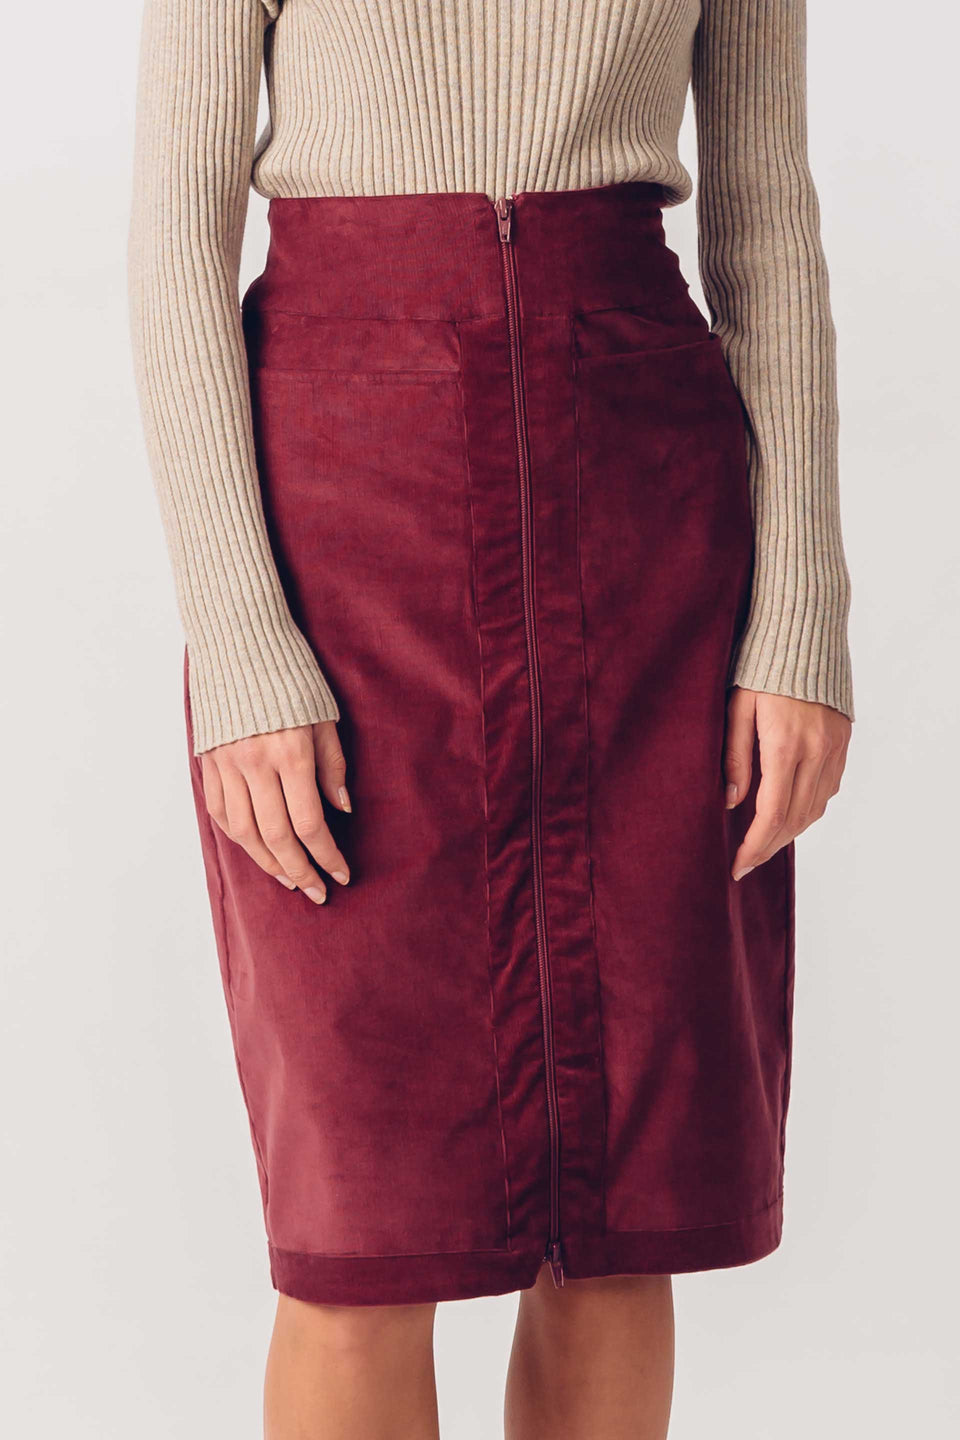 Ezozia Skirt in Burgundy